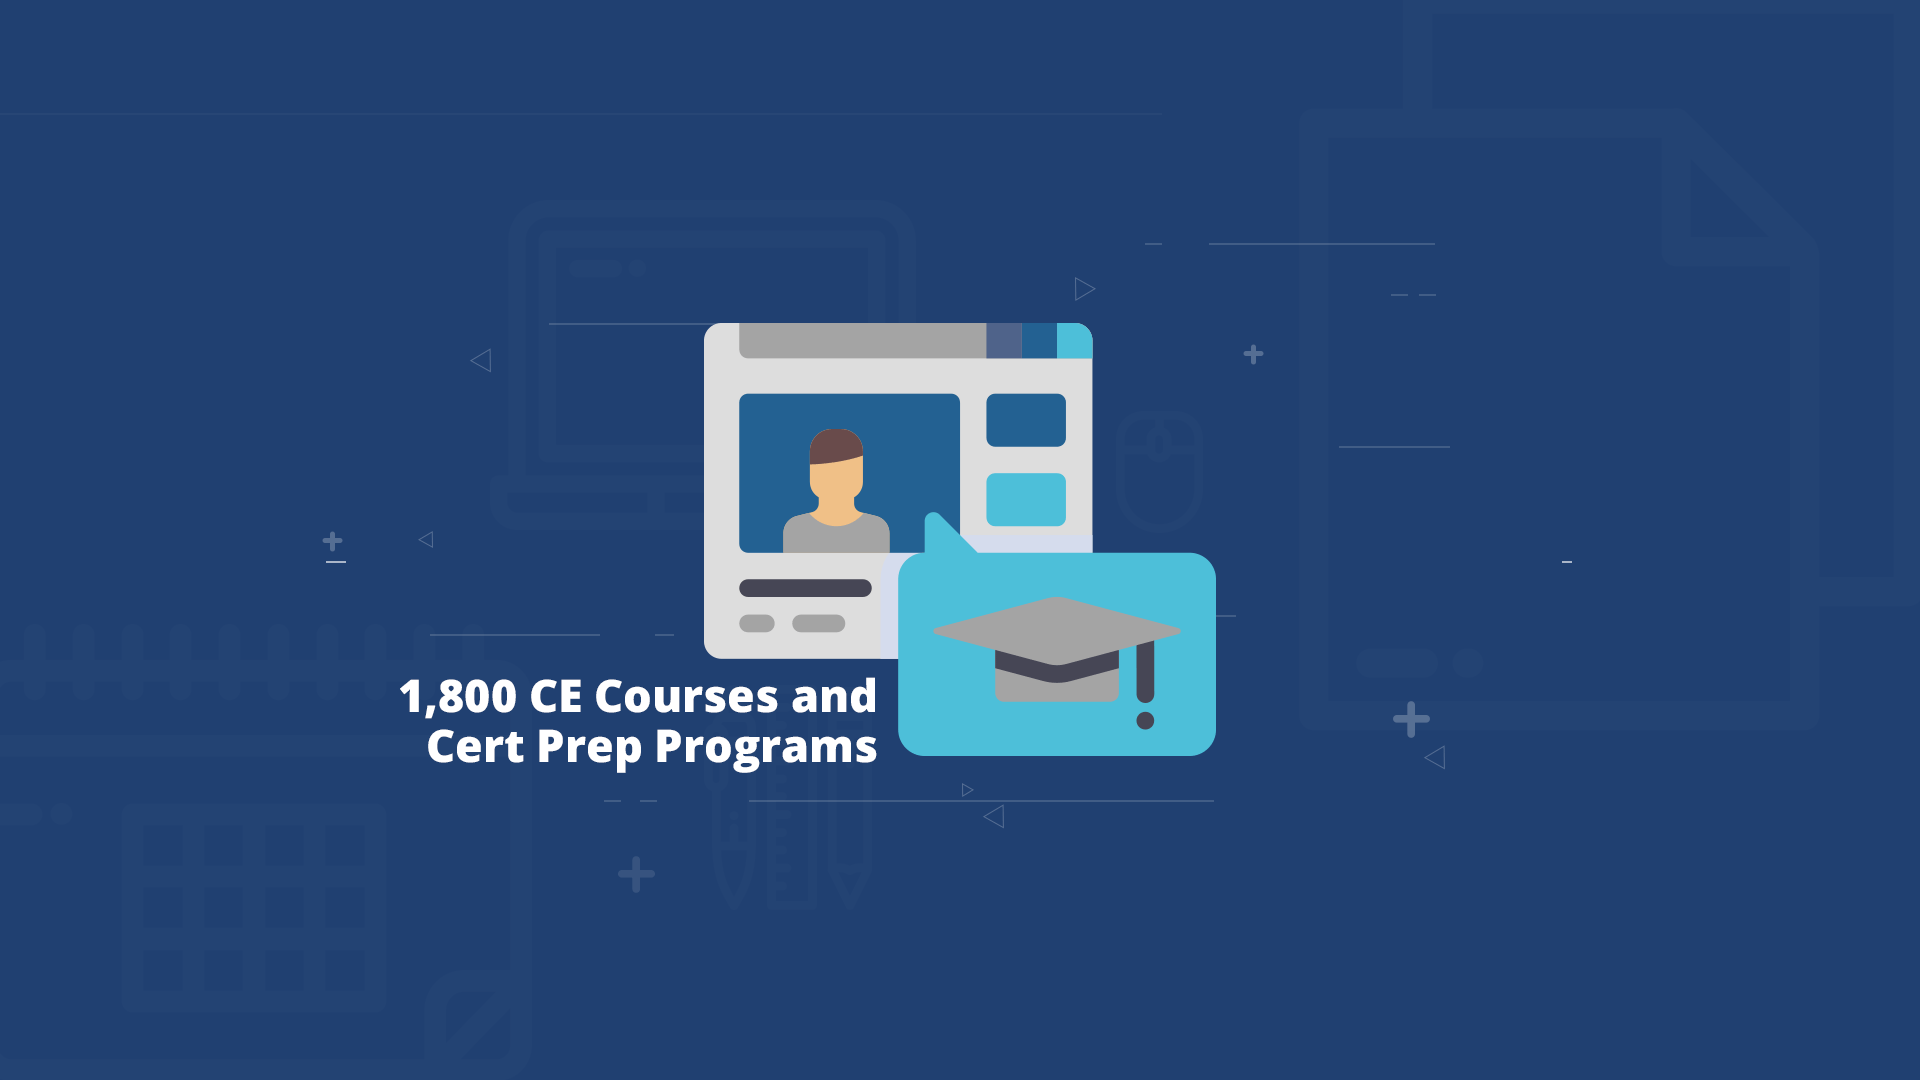 01513335_promote_lifelong_learning_styleframes_v2sf_04---_Unlimited-access-to-more-than-1,800-CE-courses-and-Cert-Prep-p.png